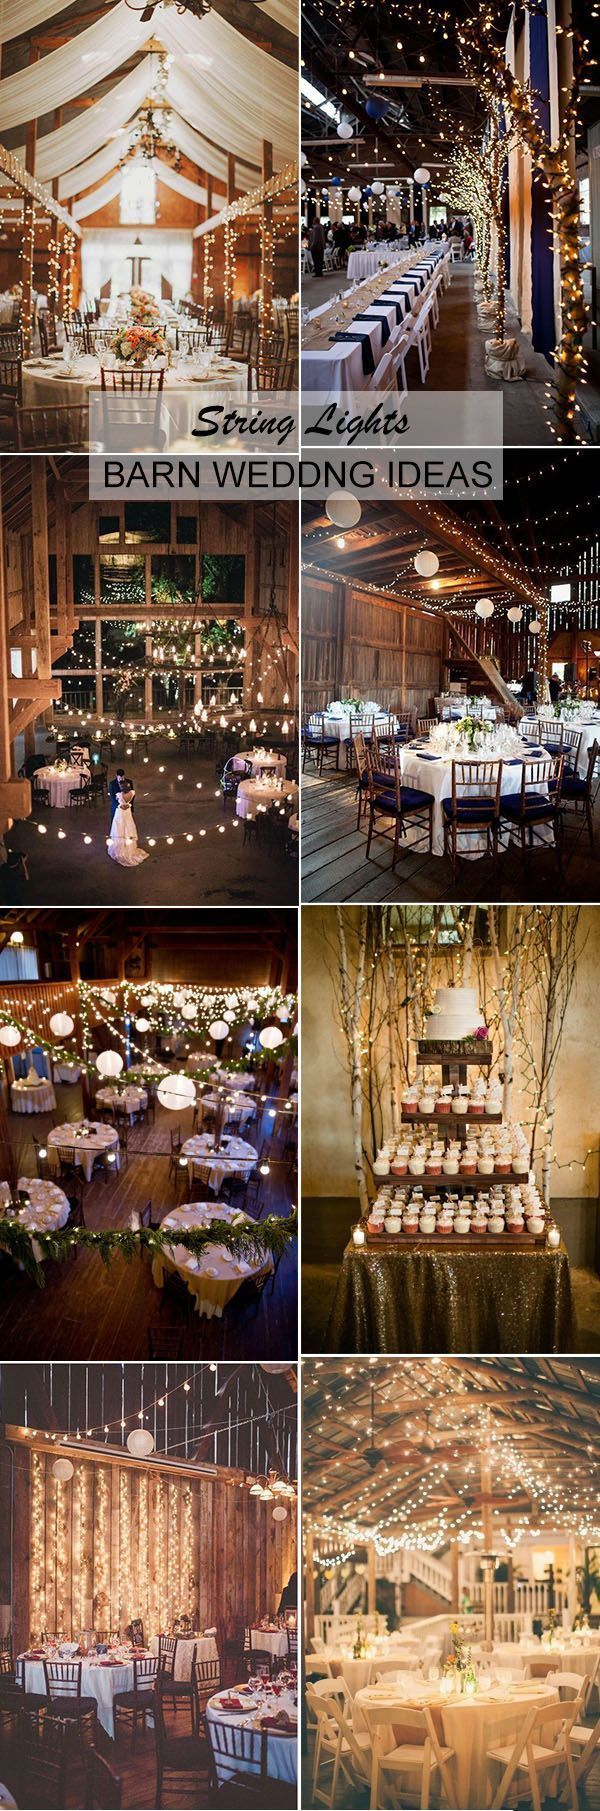 30 Stunning And Creative String Lights Wedding Decor Ideas Barn